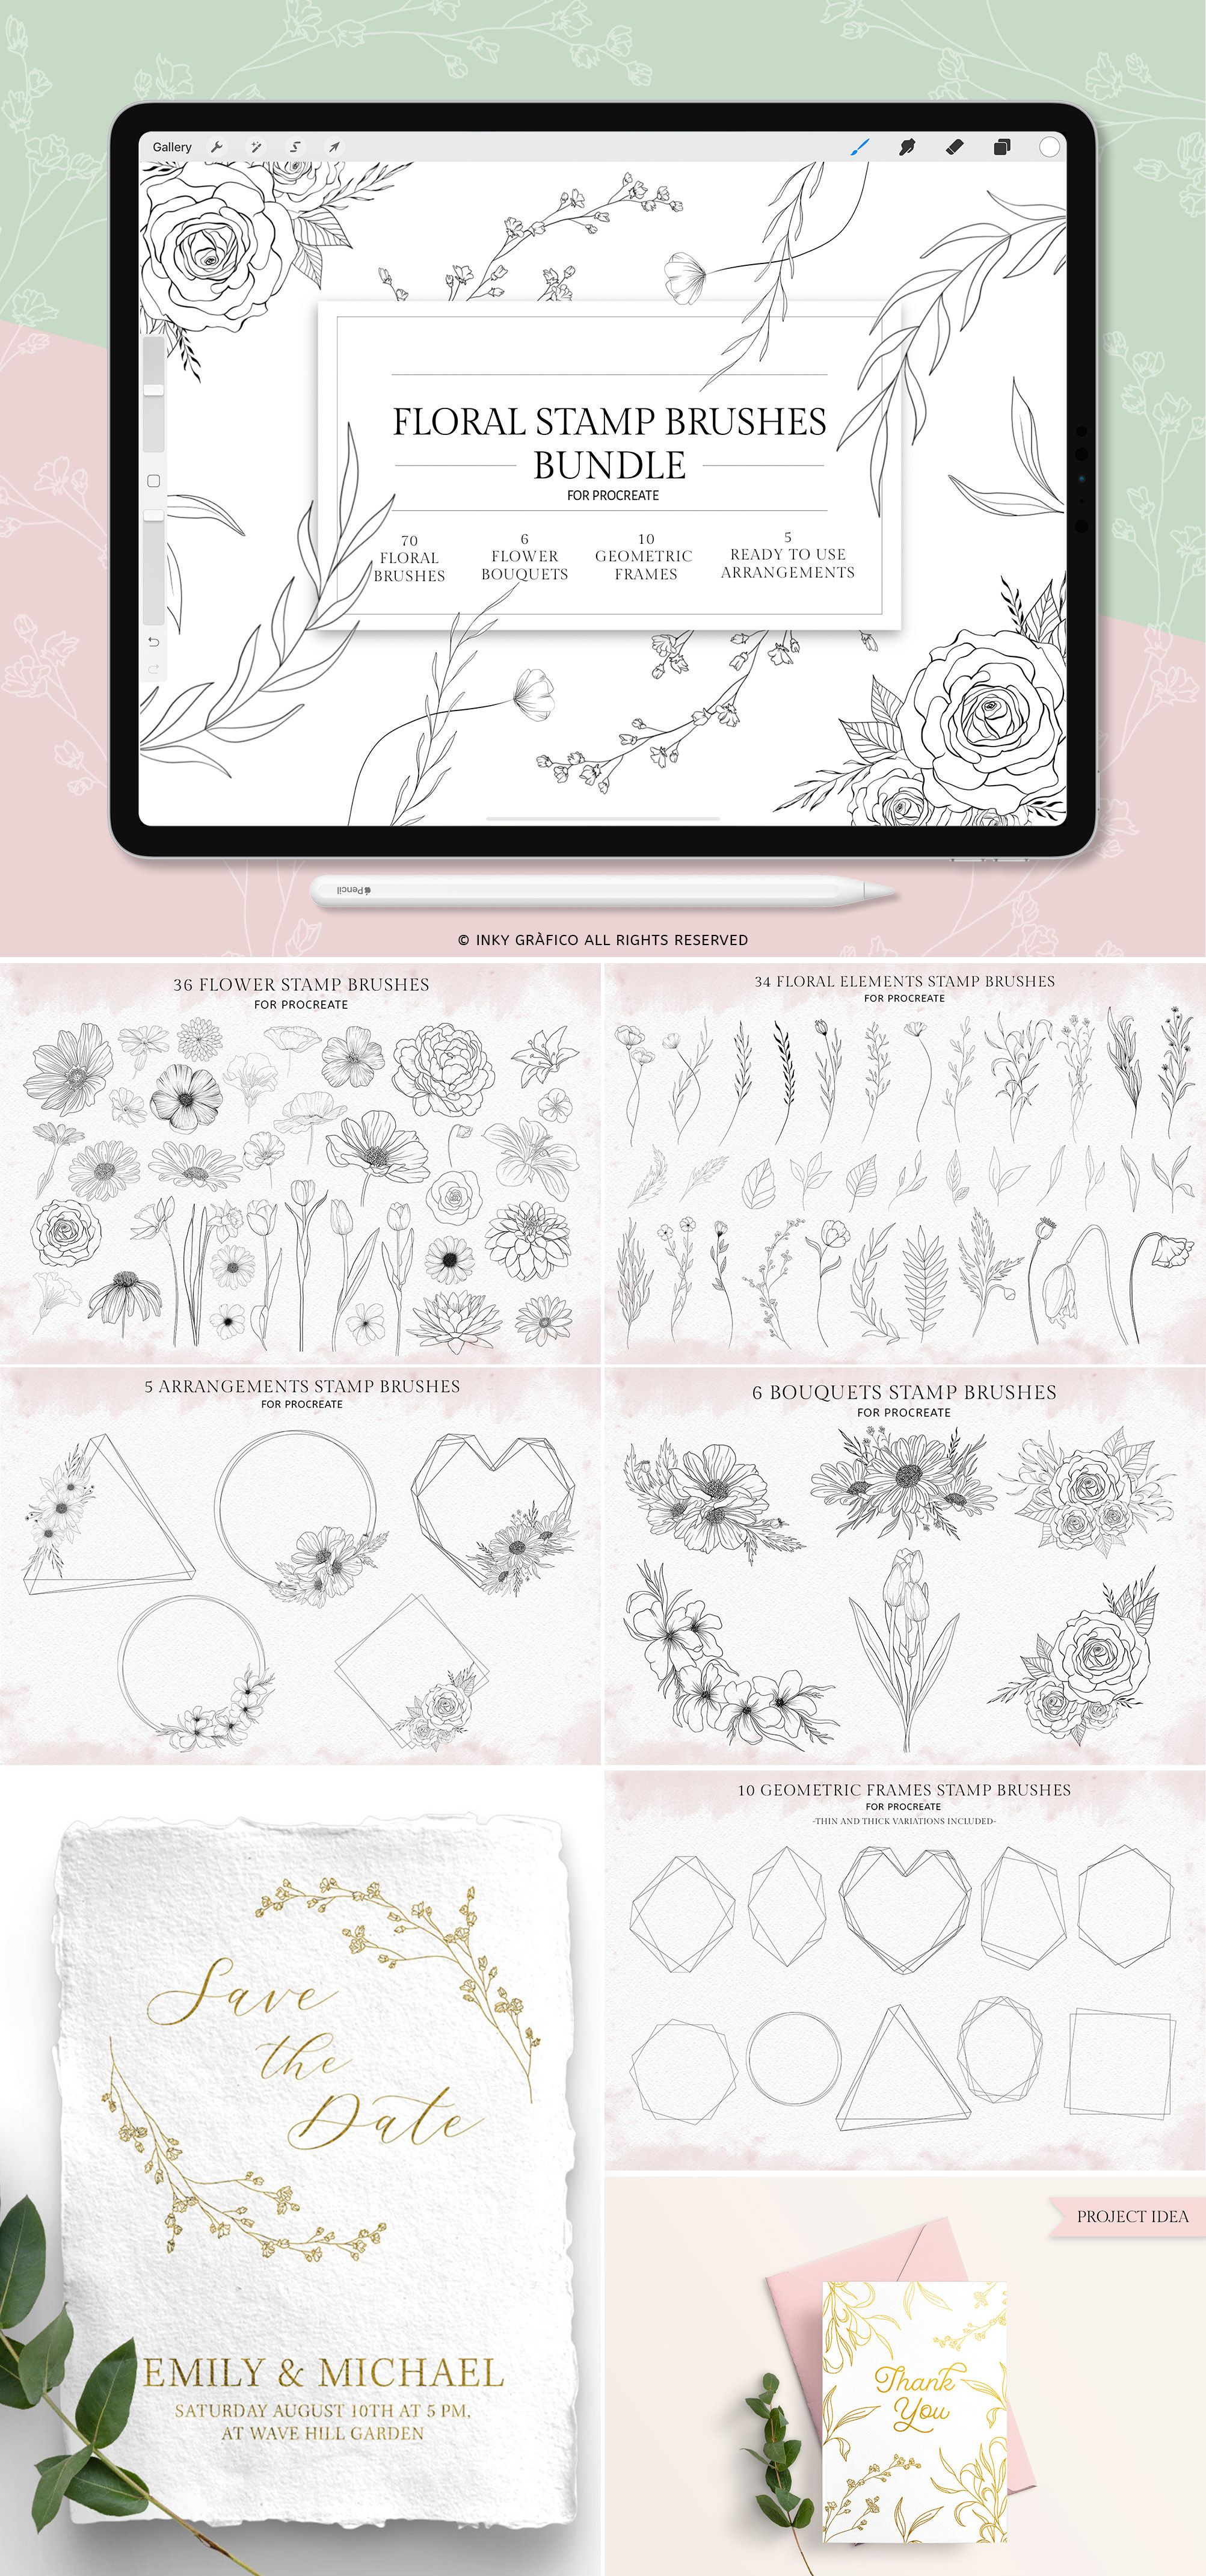 Procreate Flower Stamp Brush Floral Stamps For Procreate Hand Drawn Frames Bouquet Botanical Floral Leaves Brunch Procreate Brushes Flower Stamp Procreate Drawing Frames